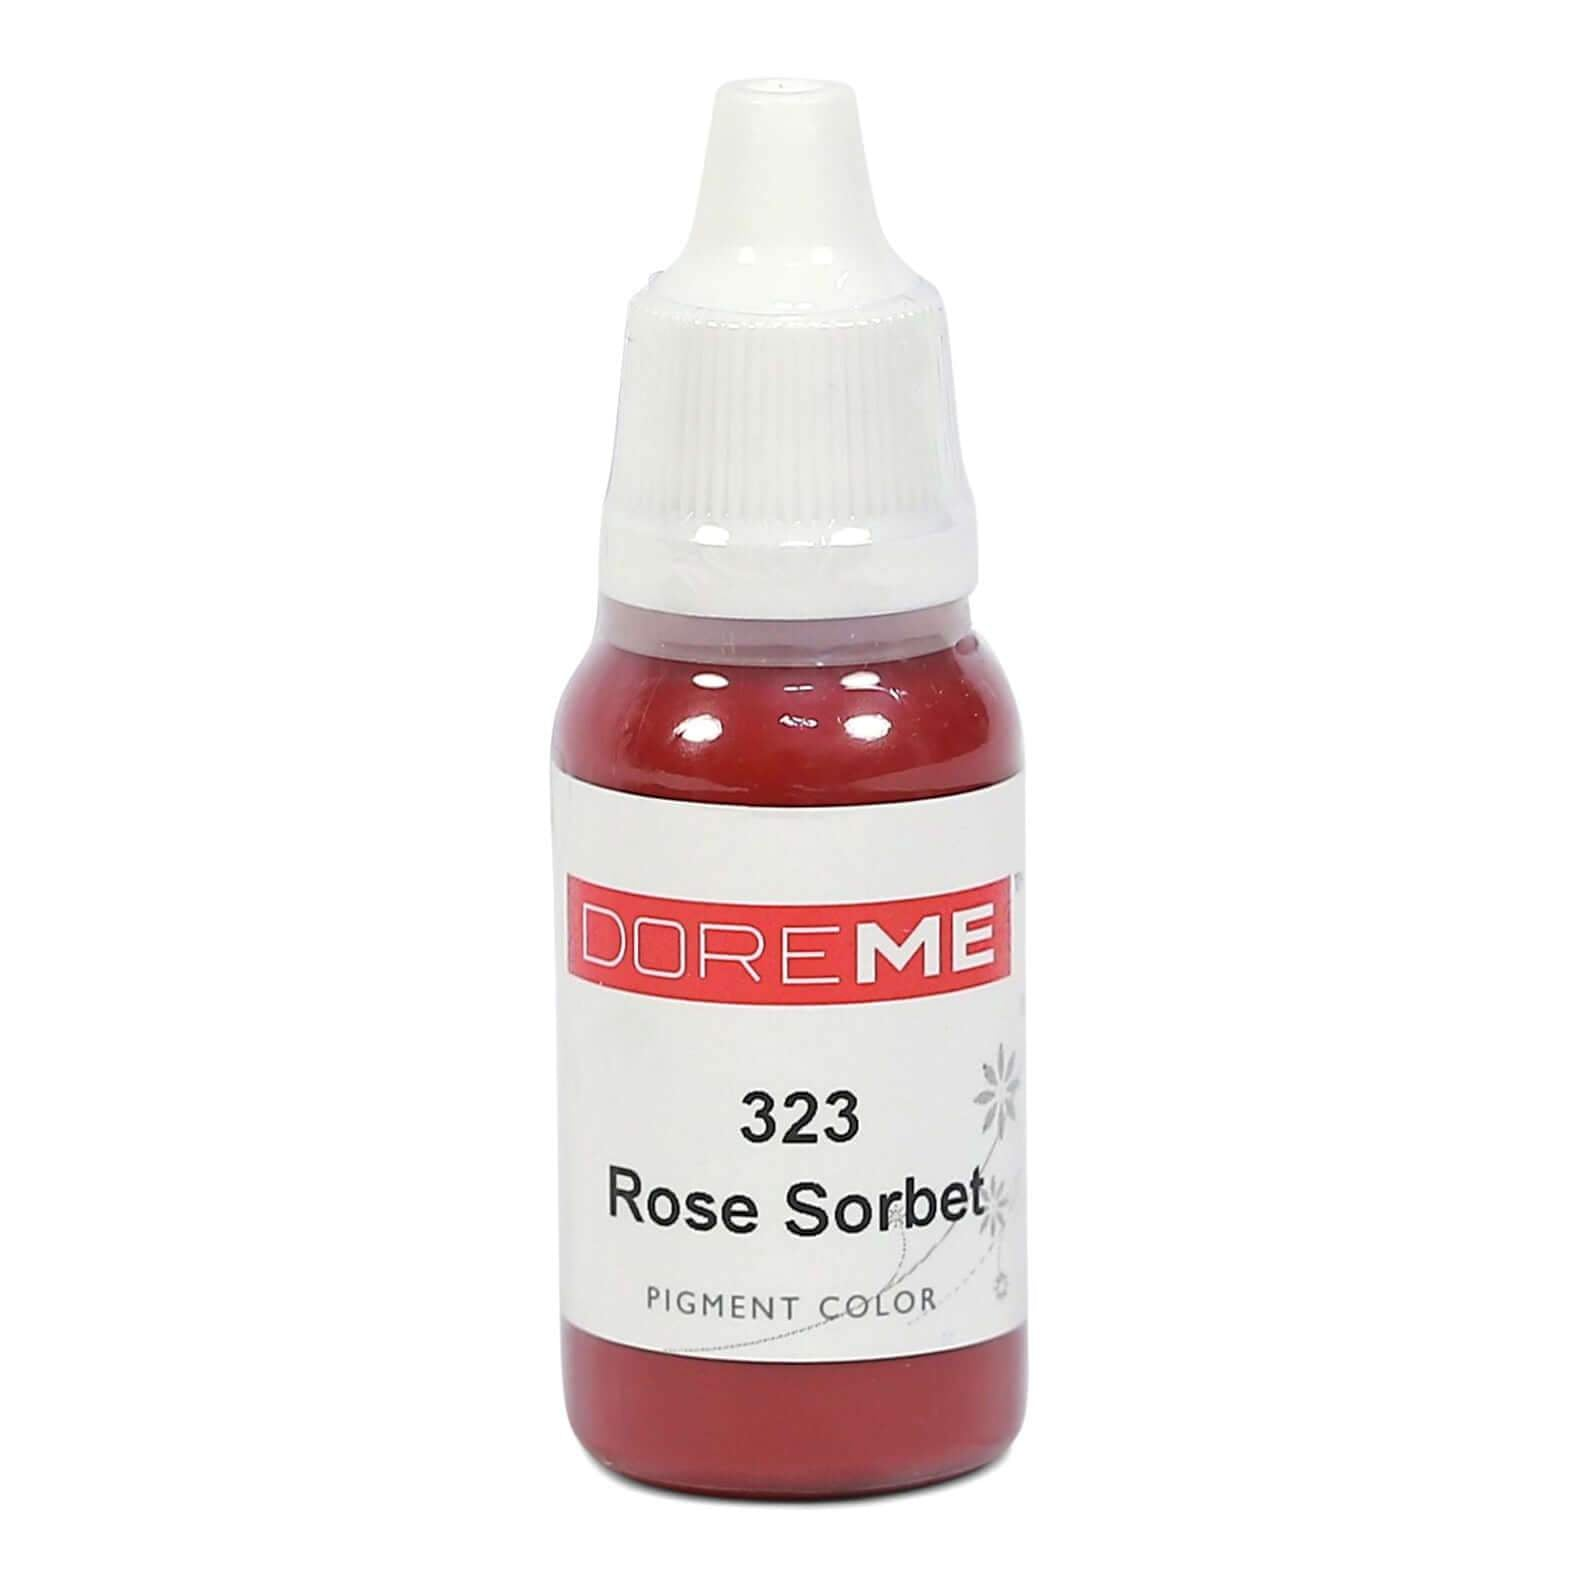 Permanent Makeup pigments Doreme Micropigmentation Eyebrow, Eyeliner, Lip Colours 323 Rose Sorbet (c) - Beautiful Ink UK trade and wholesale supplier